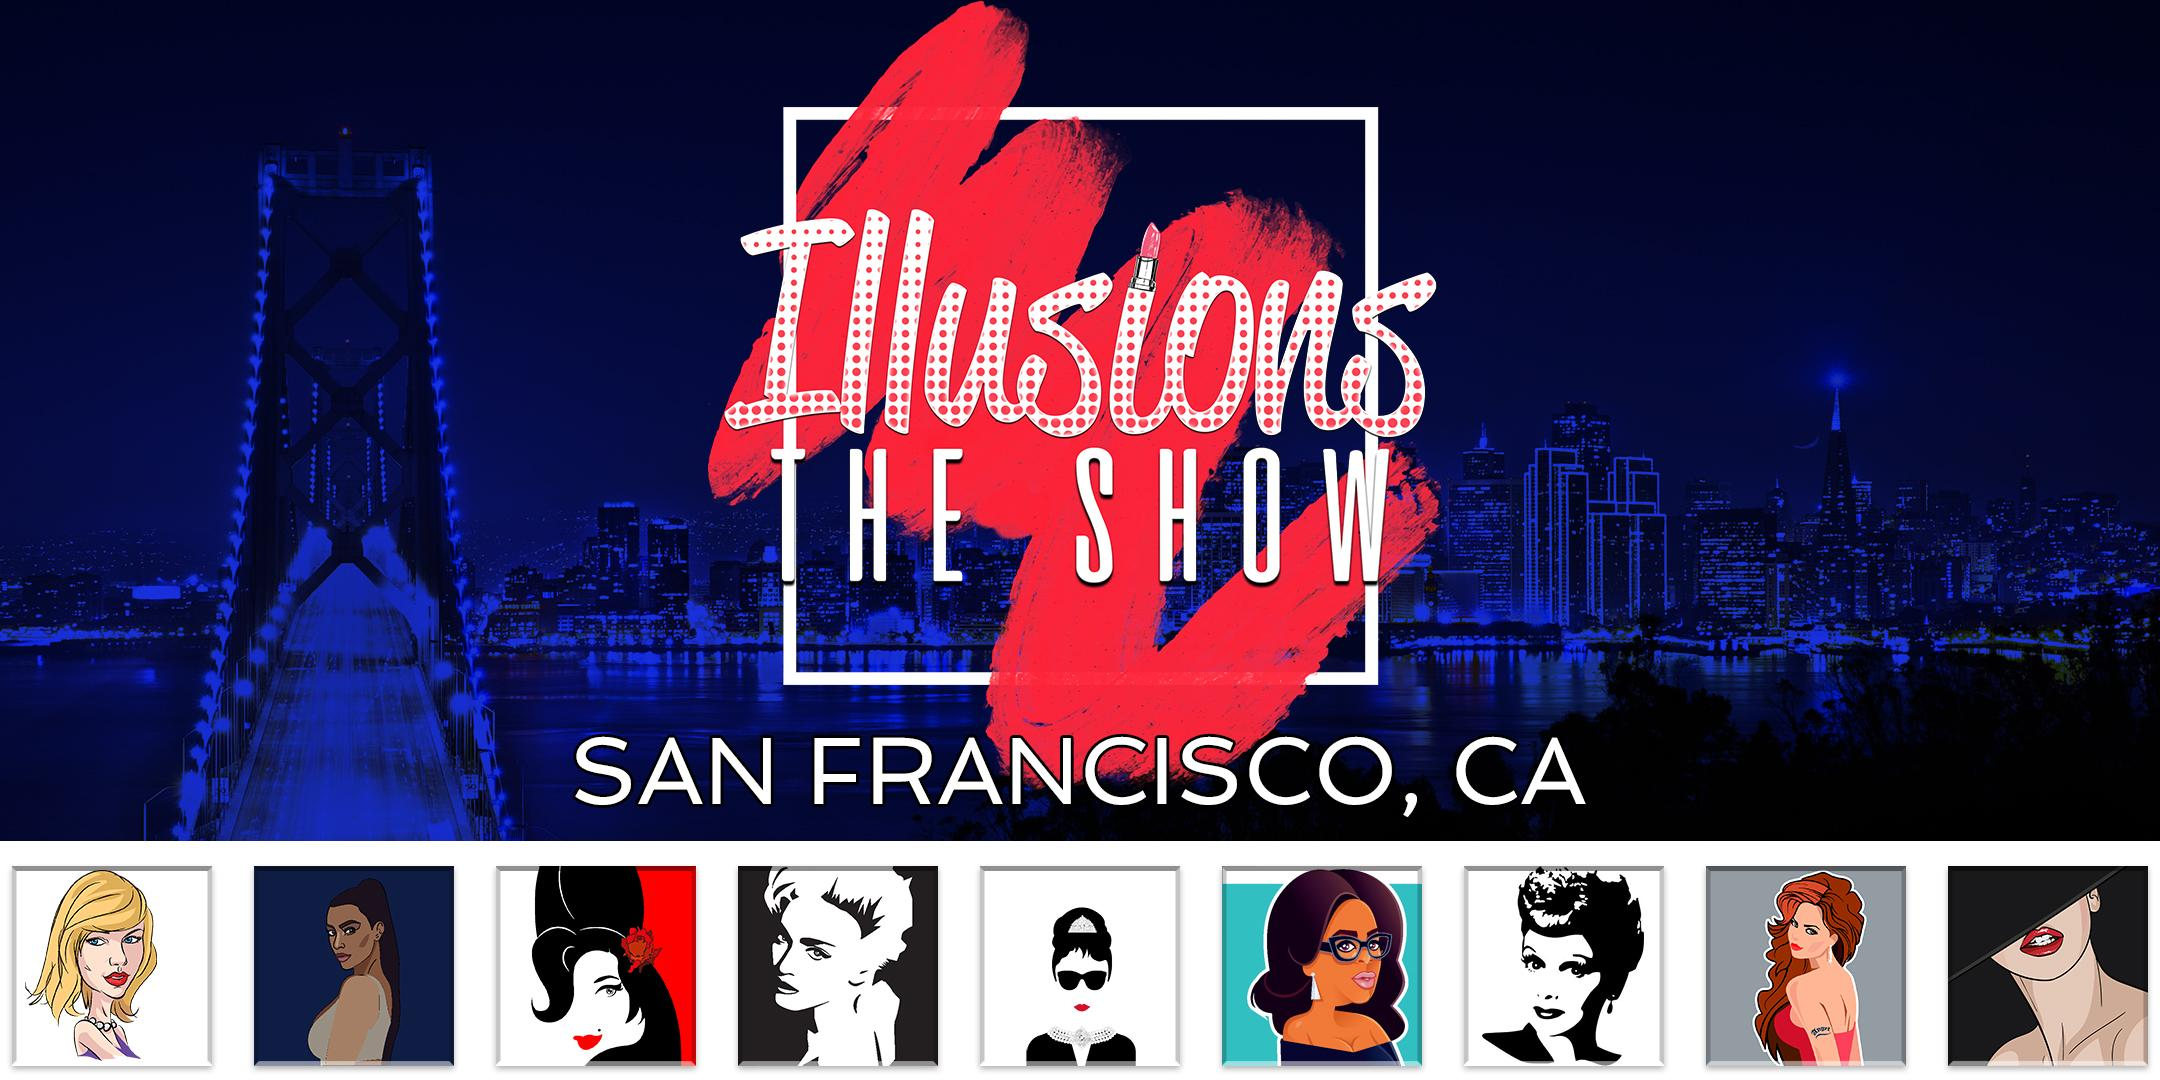 Illusions The Drag Queen Show San Francisco - Drag Queen Dinner Show - San Francisco, CA